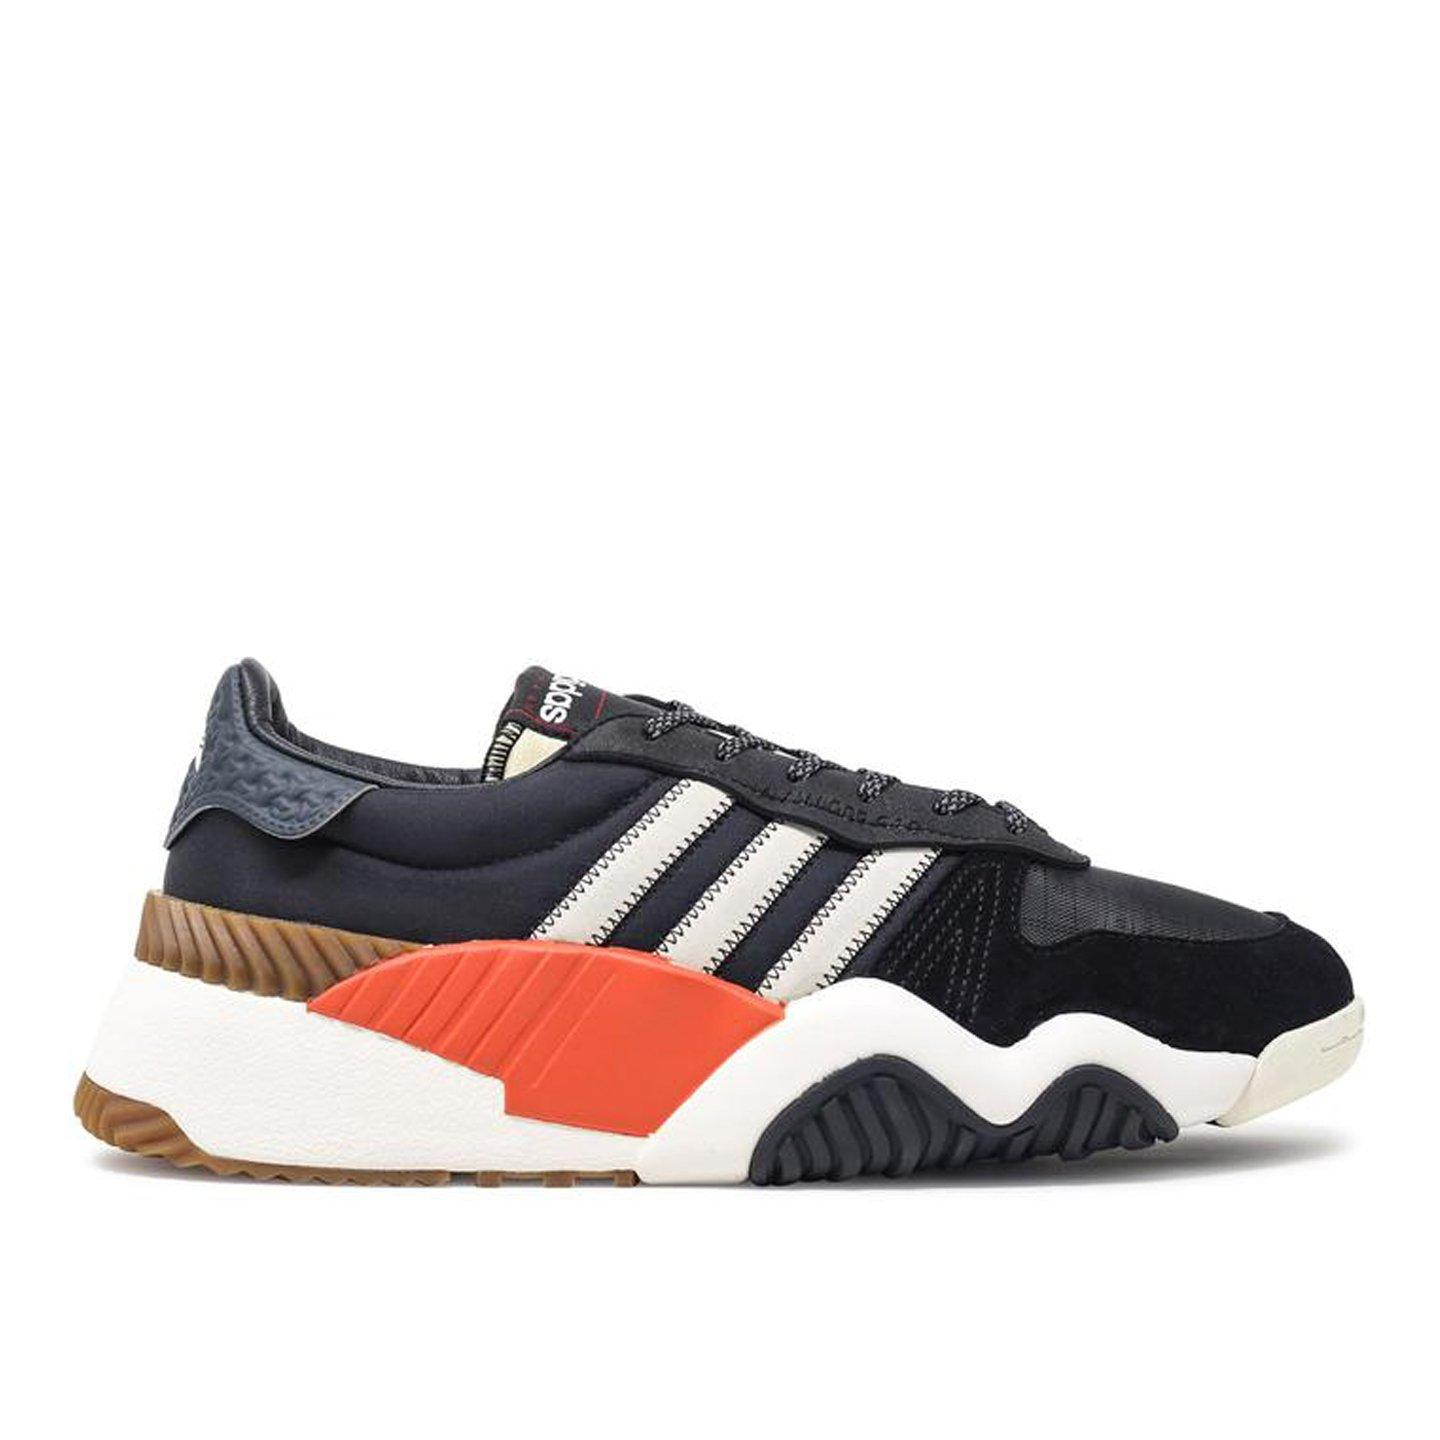 Alexander Wang X Turnout Trainer